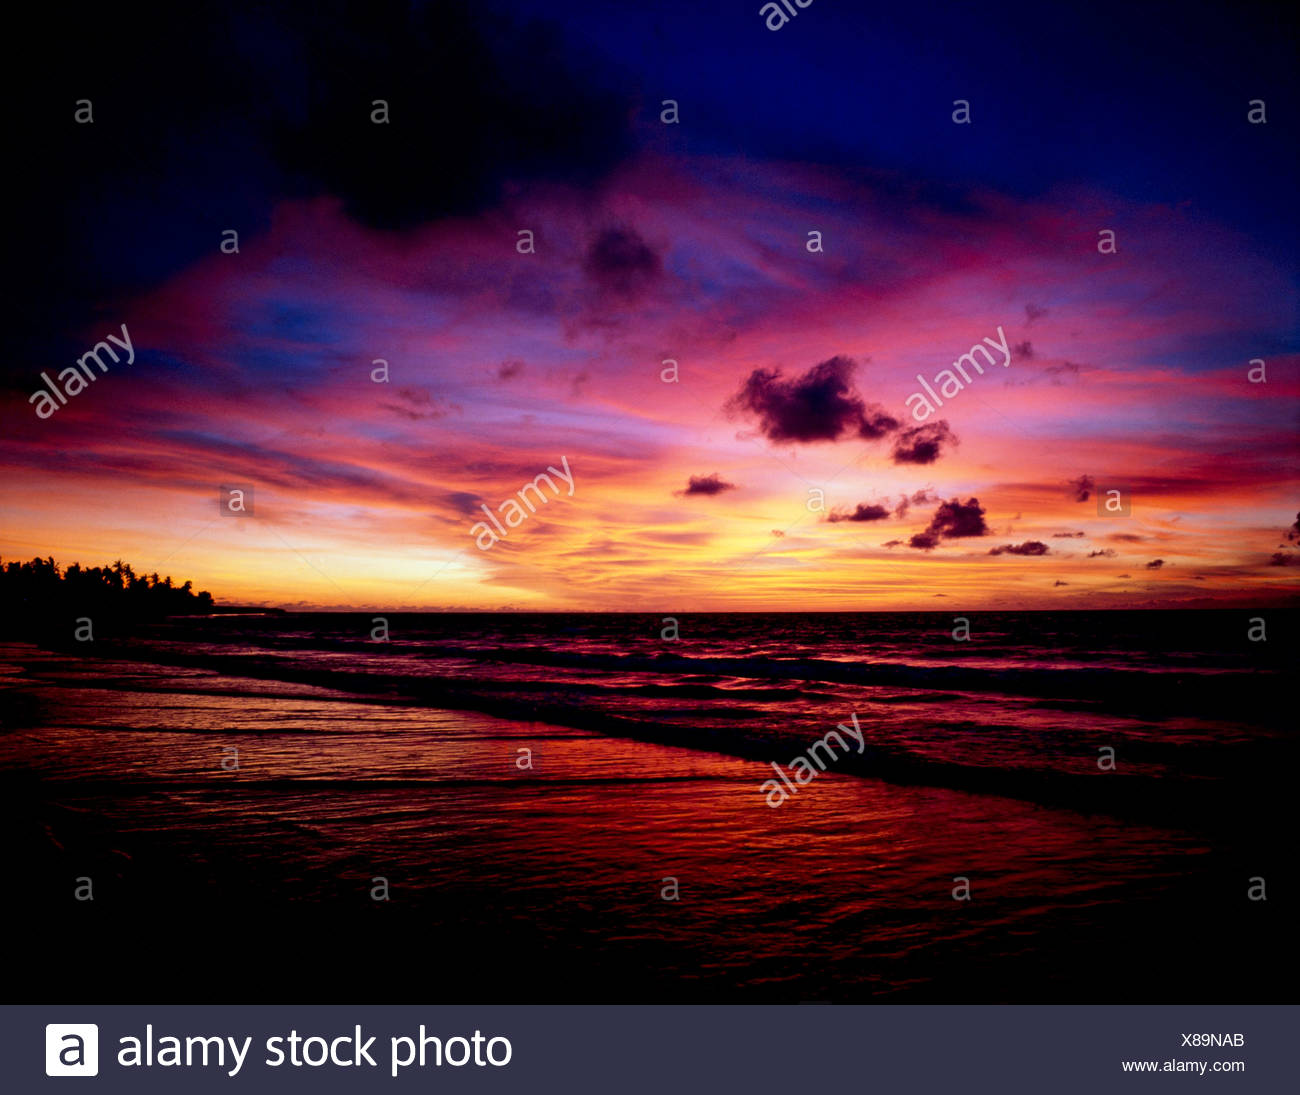 KUTA BEACH AT SUNSET,BALI,INDONESIA - Stock Image